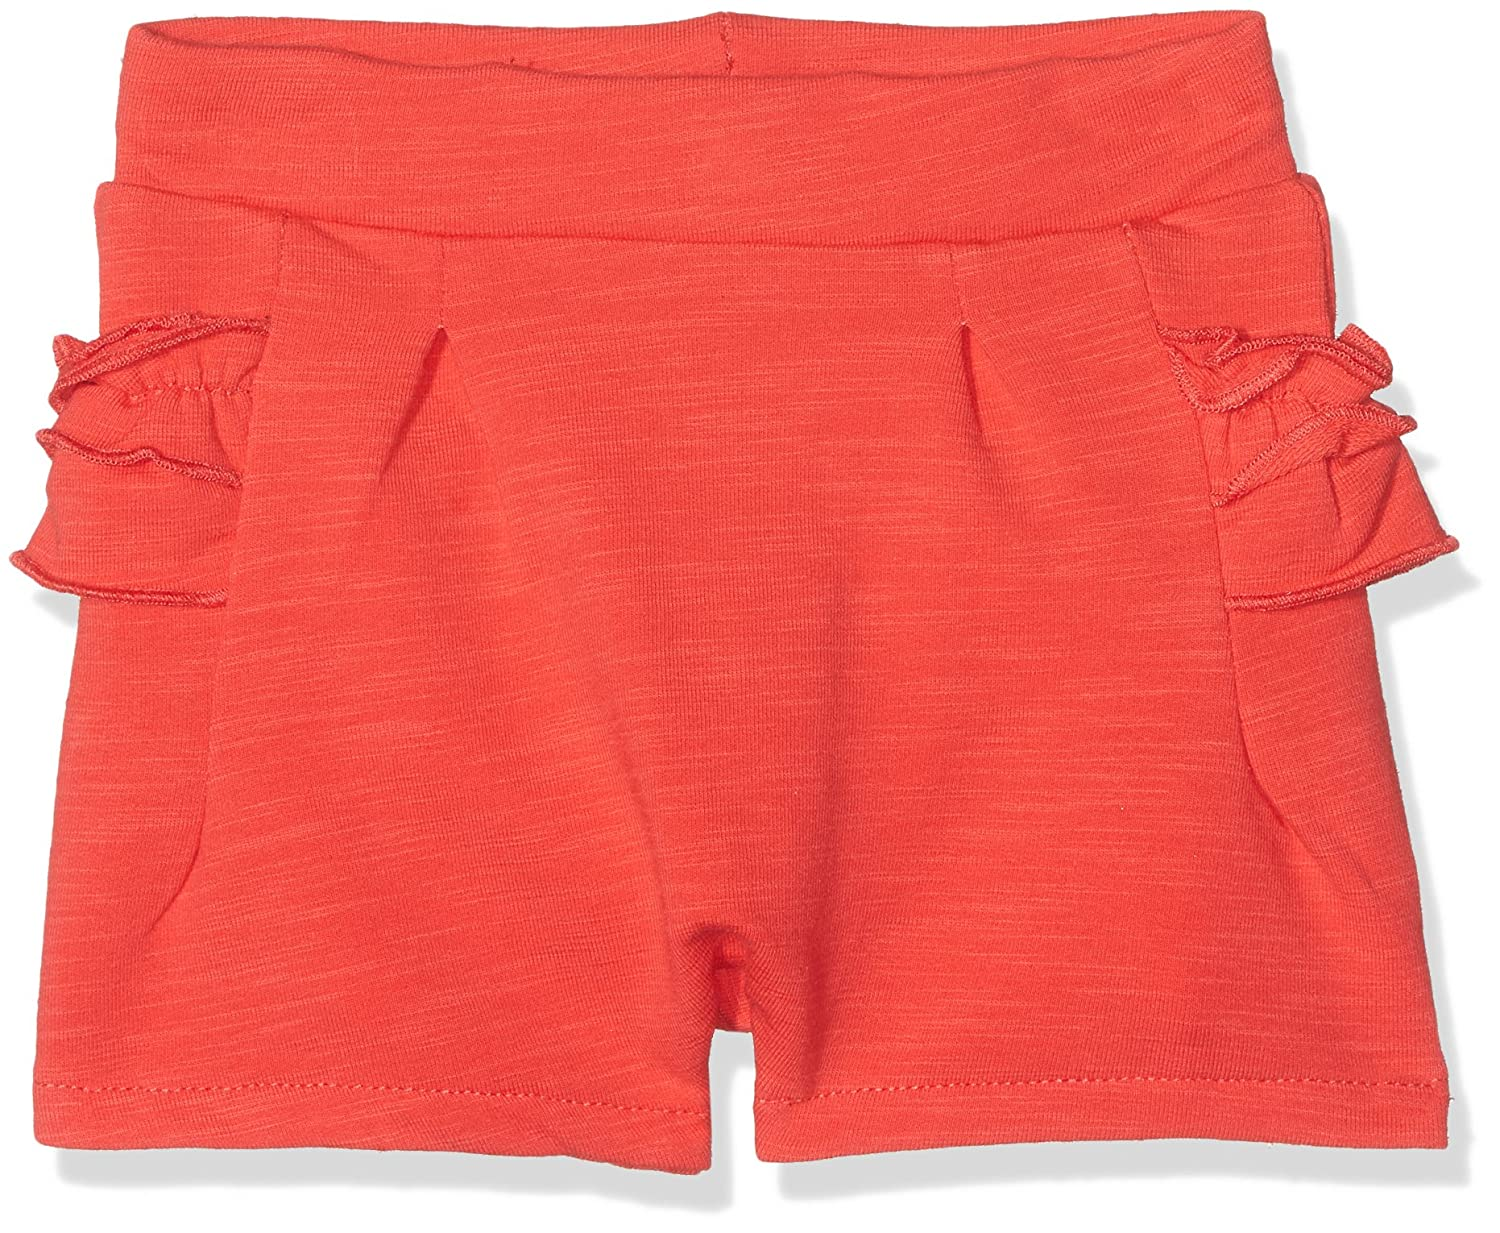 NAME IT Nbfgama Light Swe Shorts UNB, Pantalones Cortos para Bebés 13152829